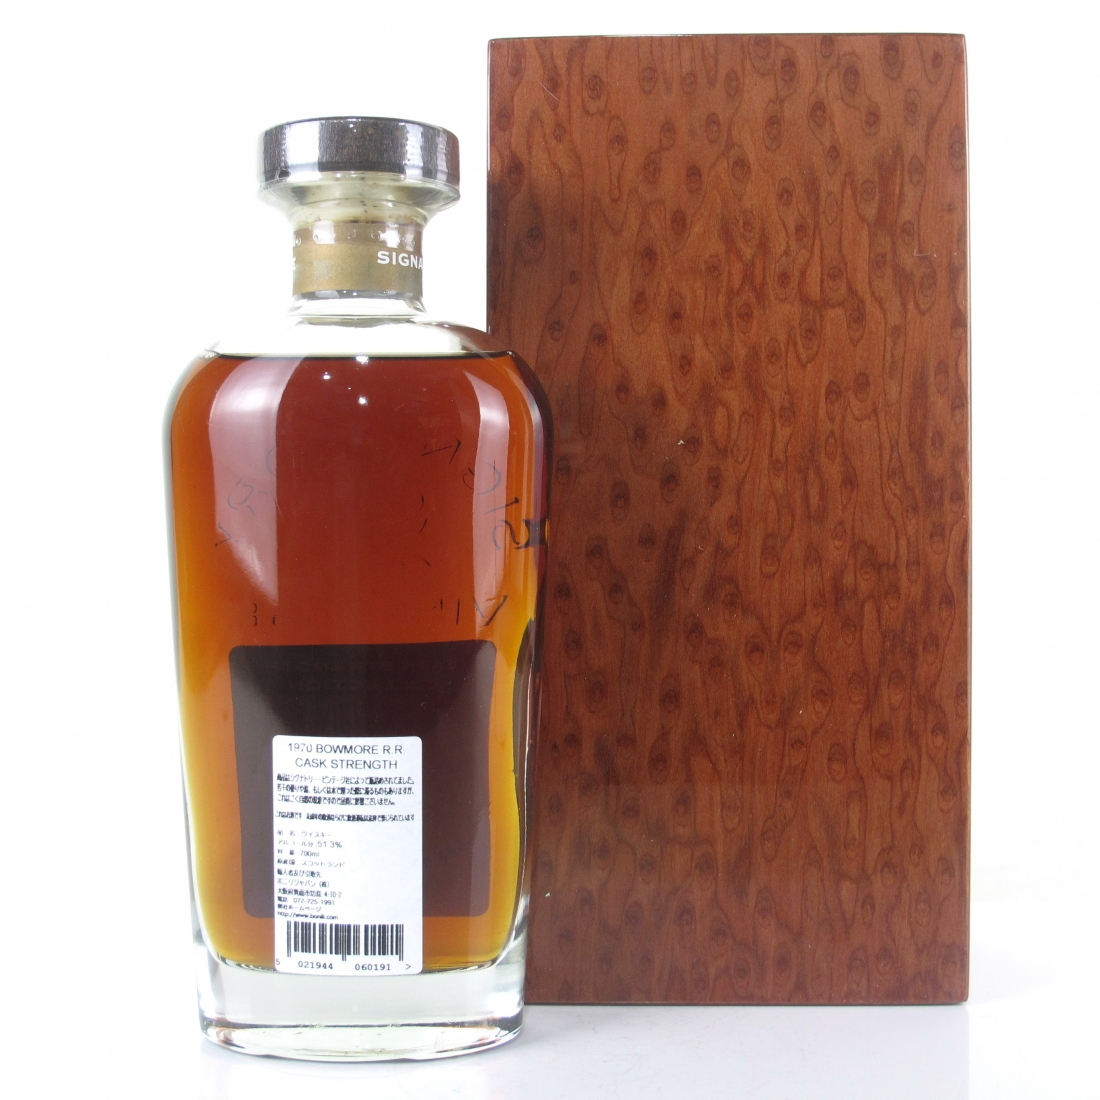 Bowmore 1970 Signatory Vintage 35 Year Old / Cask Strength